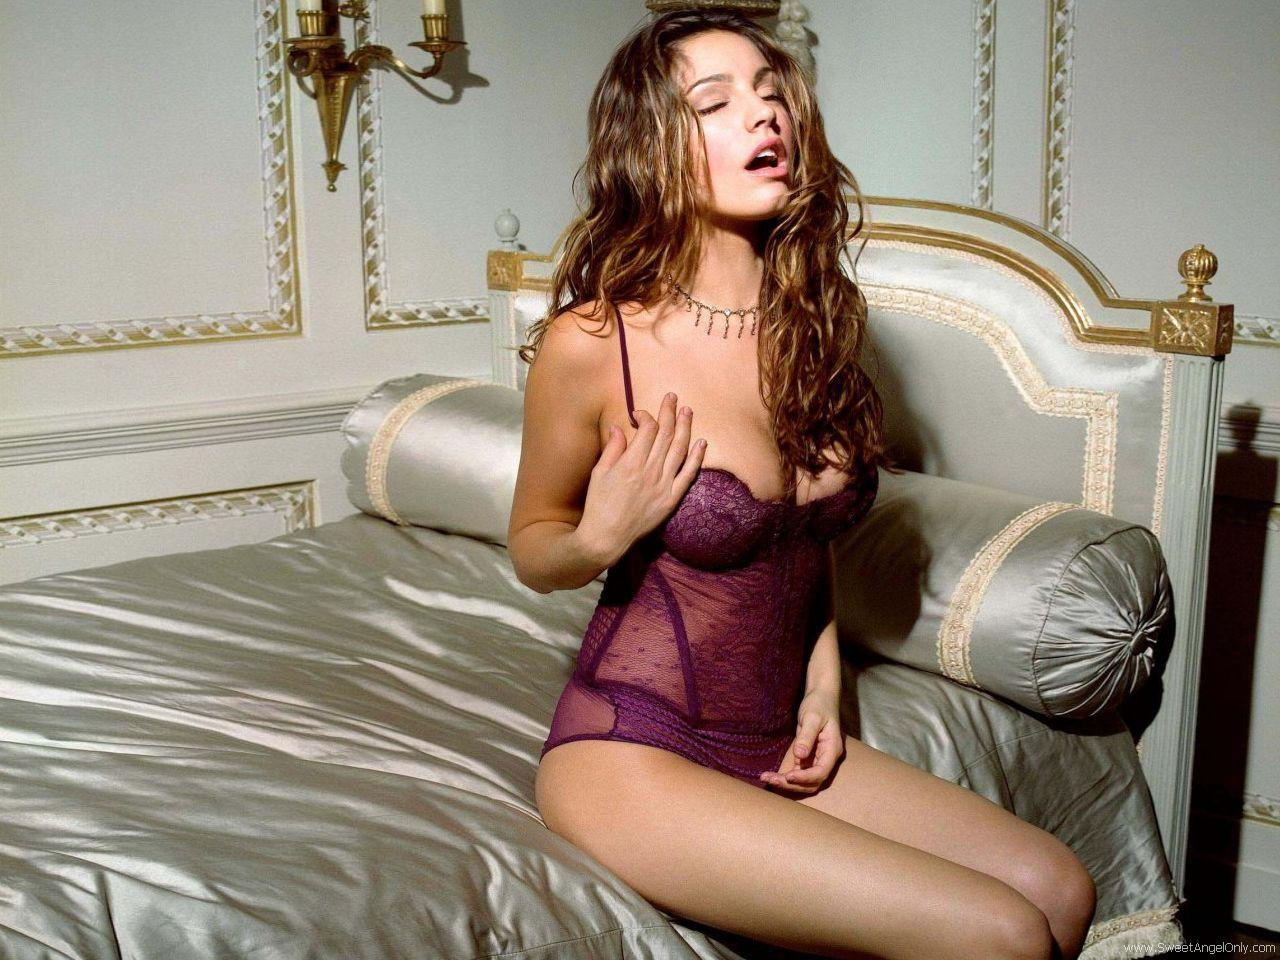 http://4.bp.blogspot.com/-AGIqiMSDCMk/TeDfMV5wY8I/AAAAAAAAFic/PDg7beUn24U/s1600/kelly_brook_hot_HD_Wallpaper_38.jpg